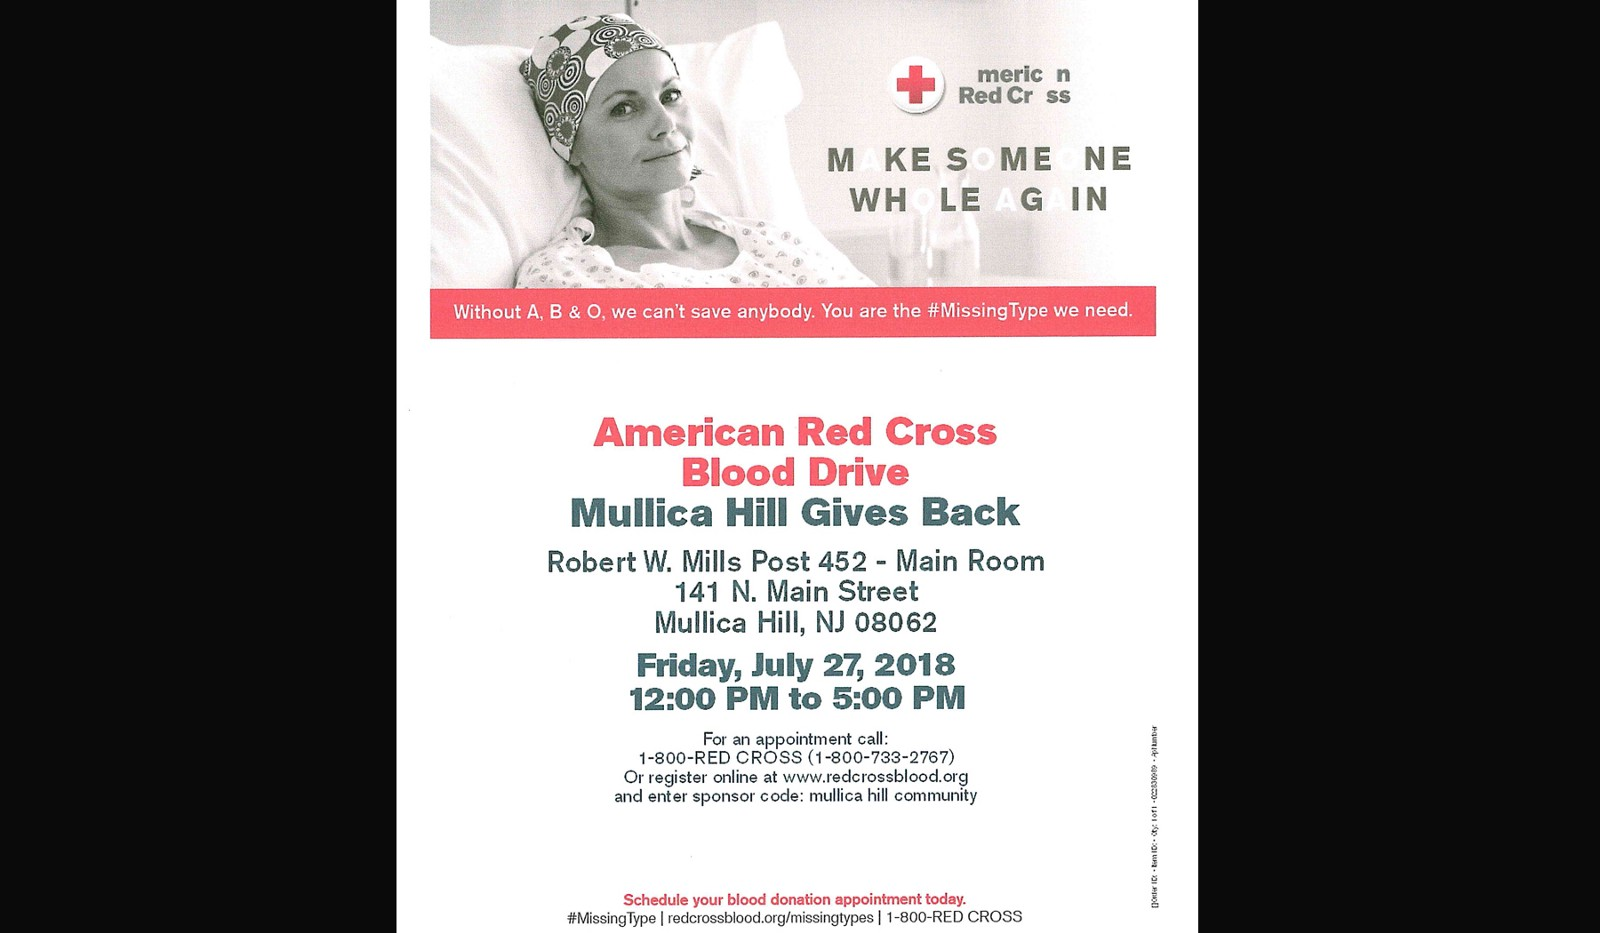 Mullica Hill Gives Back Blood Drive On July 27 Seeking Donors